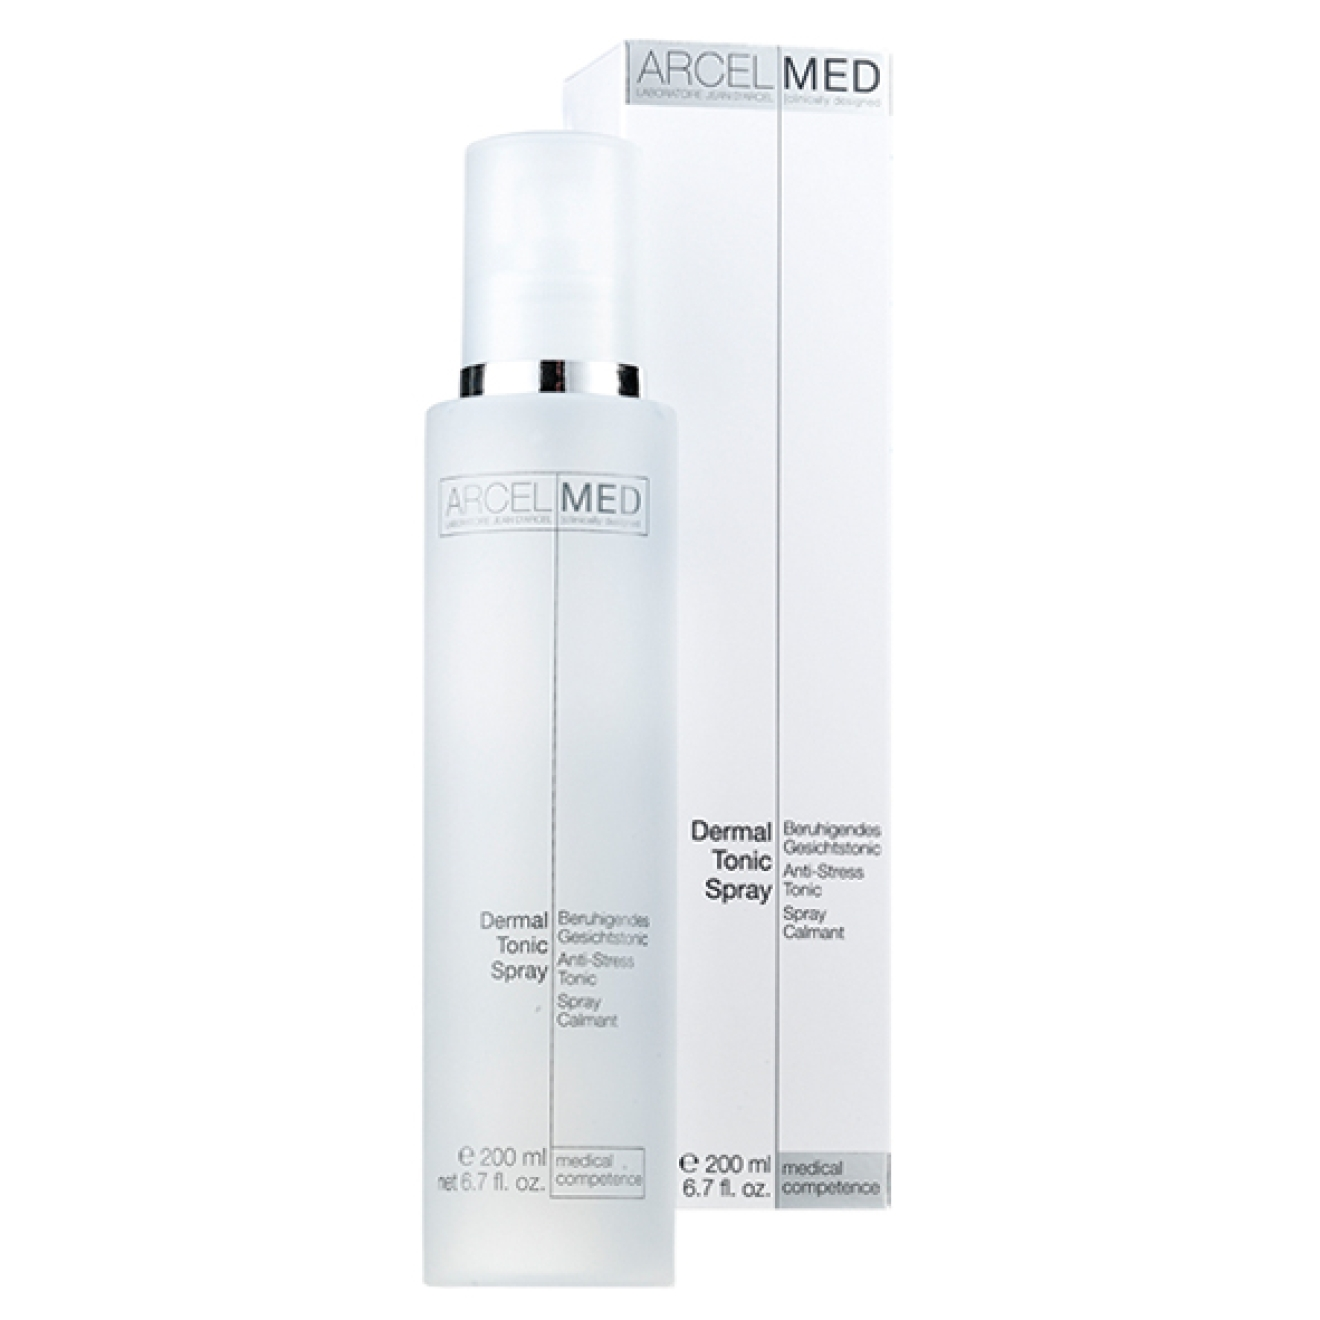 Jean D'Arcel - Arcelmed Dermal Tonic Spray 200 ml